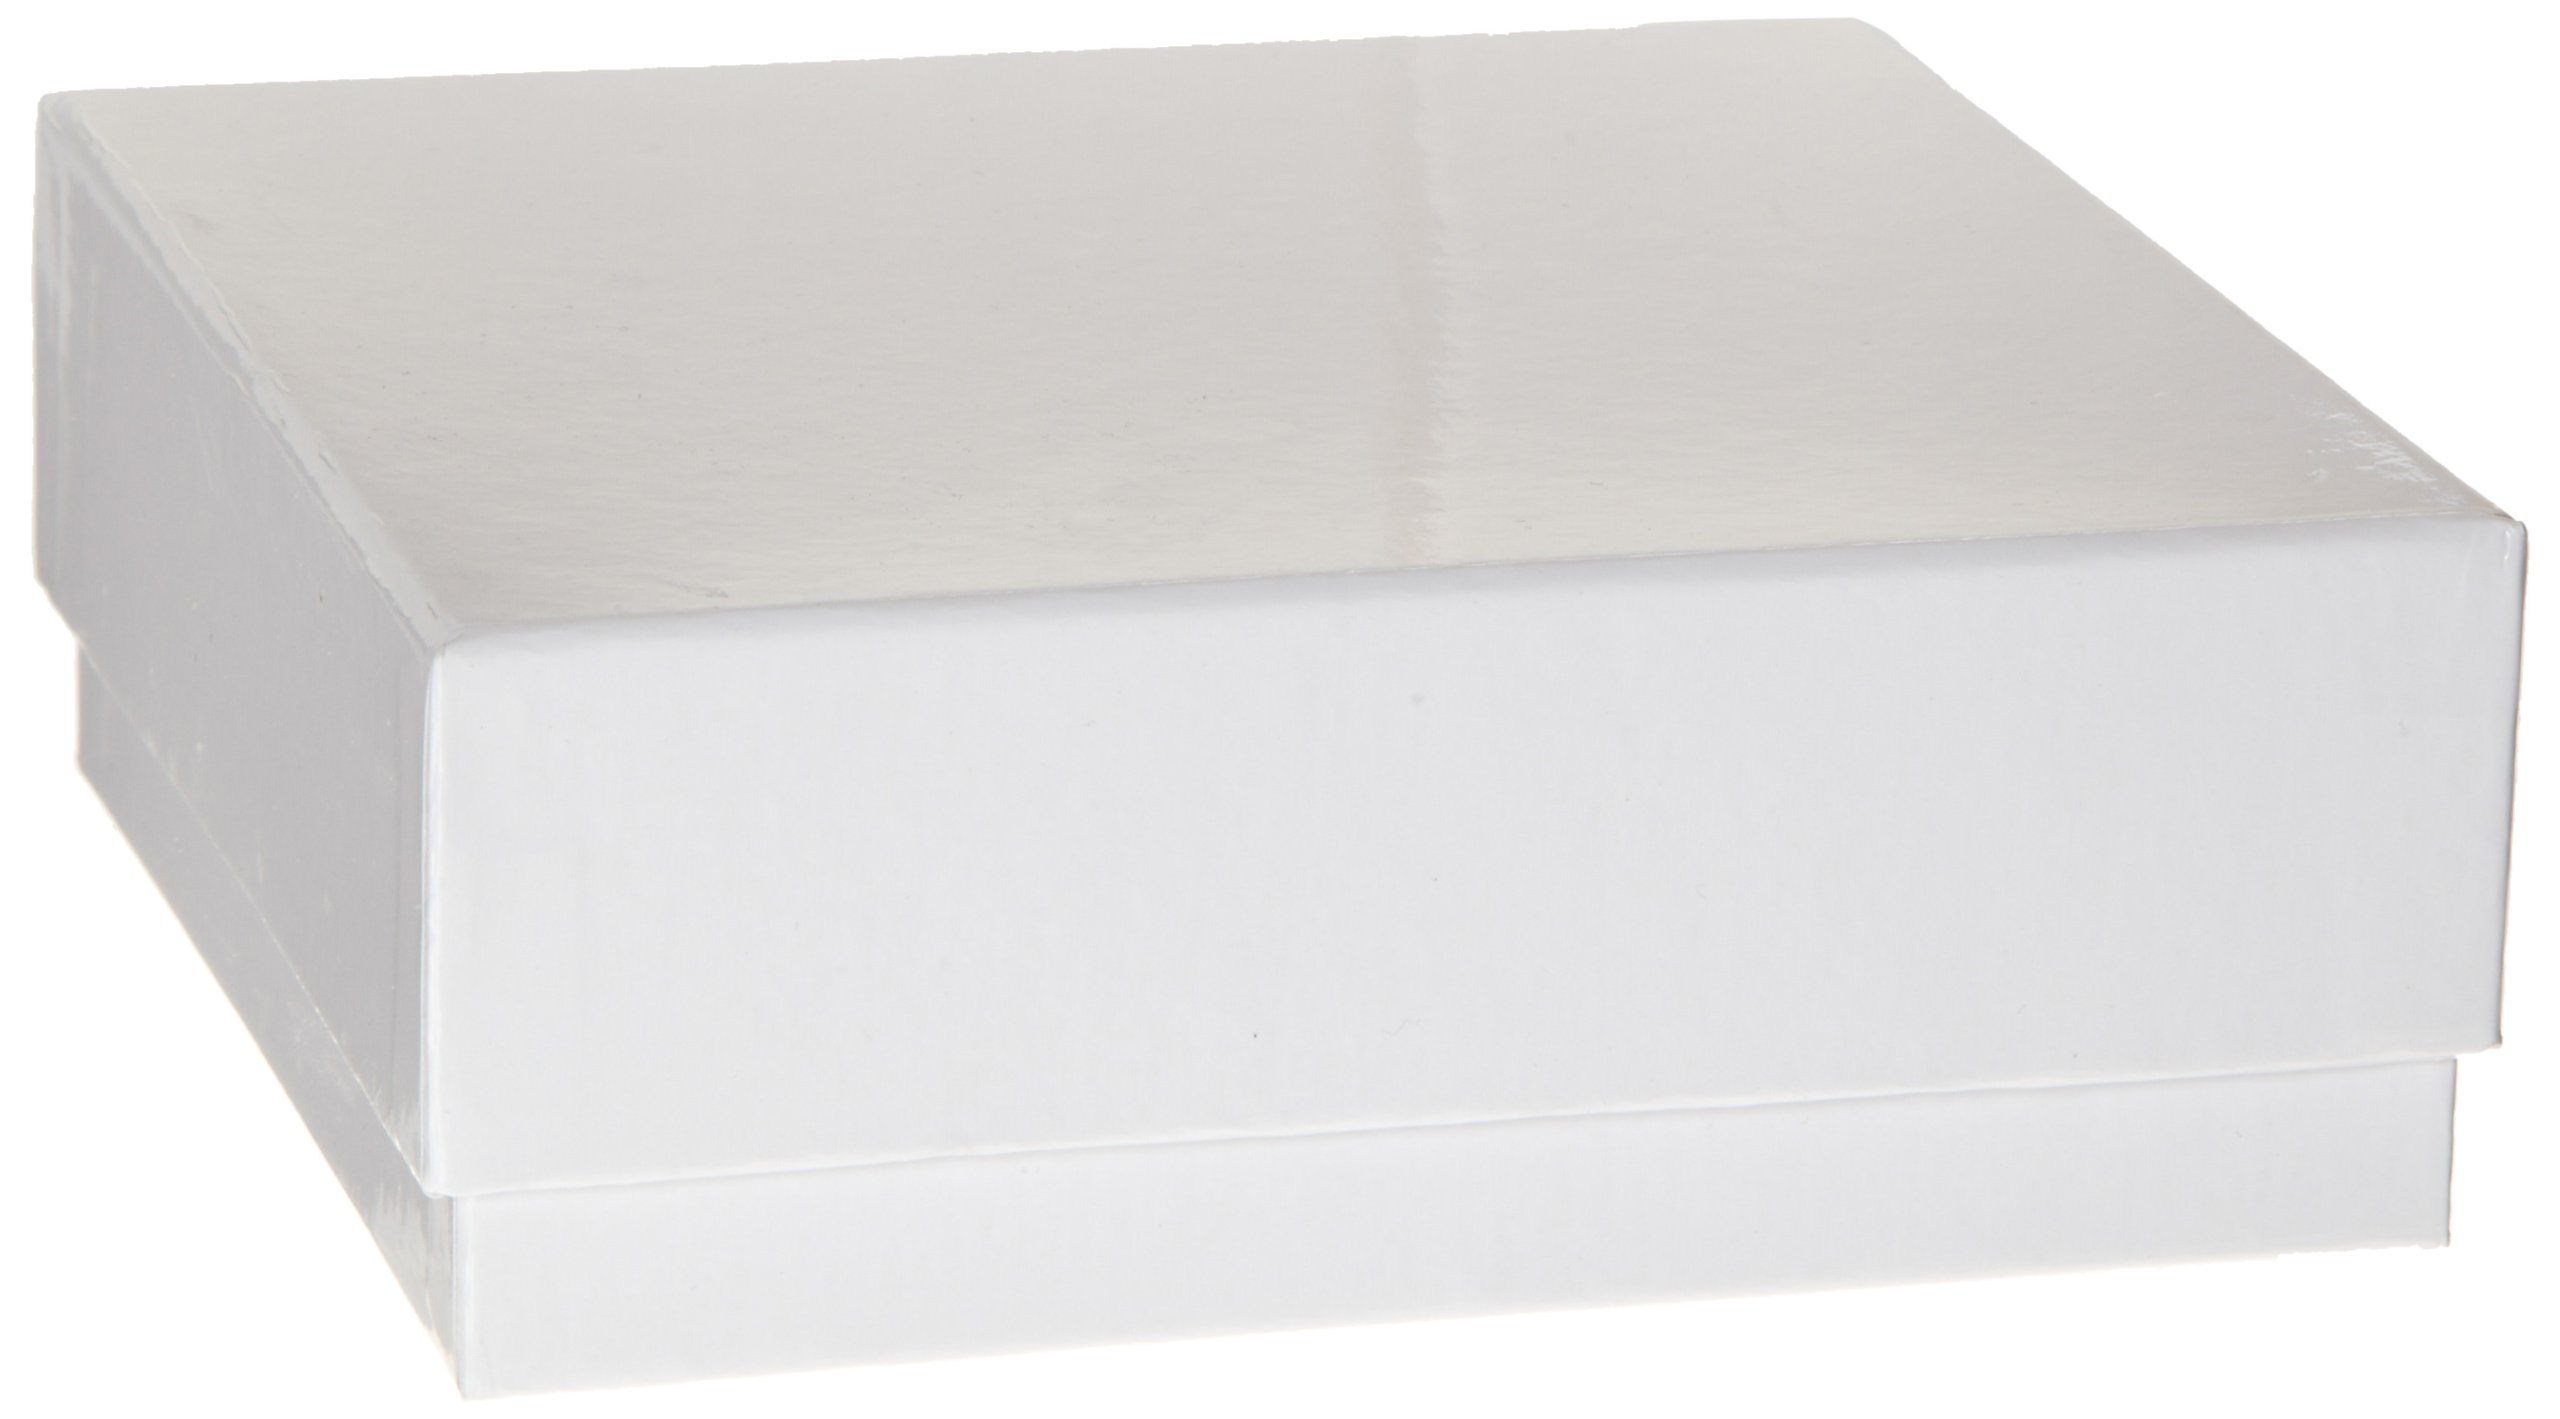 Heathrow Scientific HD2860B White Cardboard Cryovial Box with Lid, 75mm Height (Pack of 12) by Heathrow Scientific